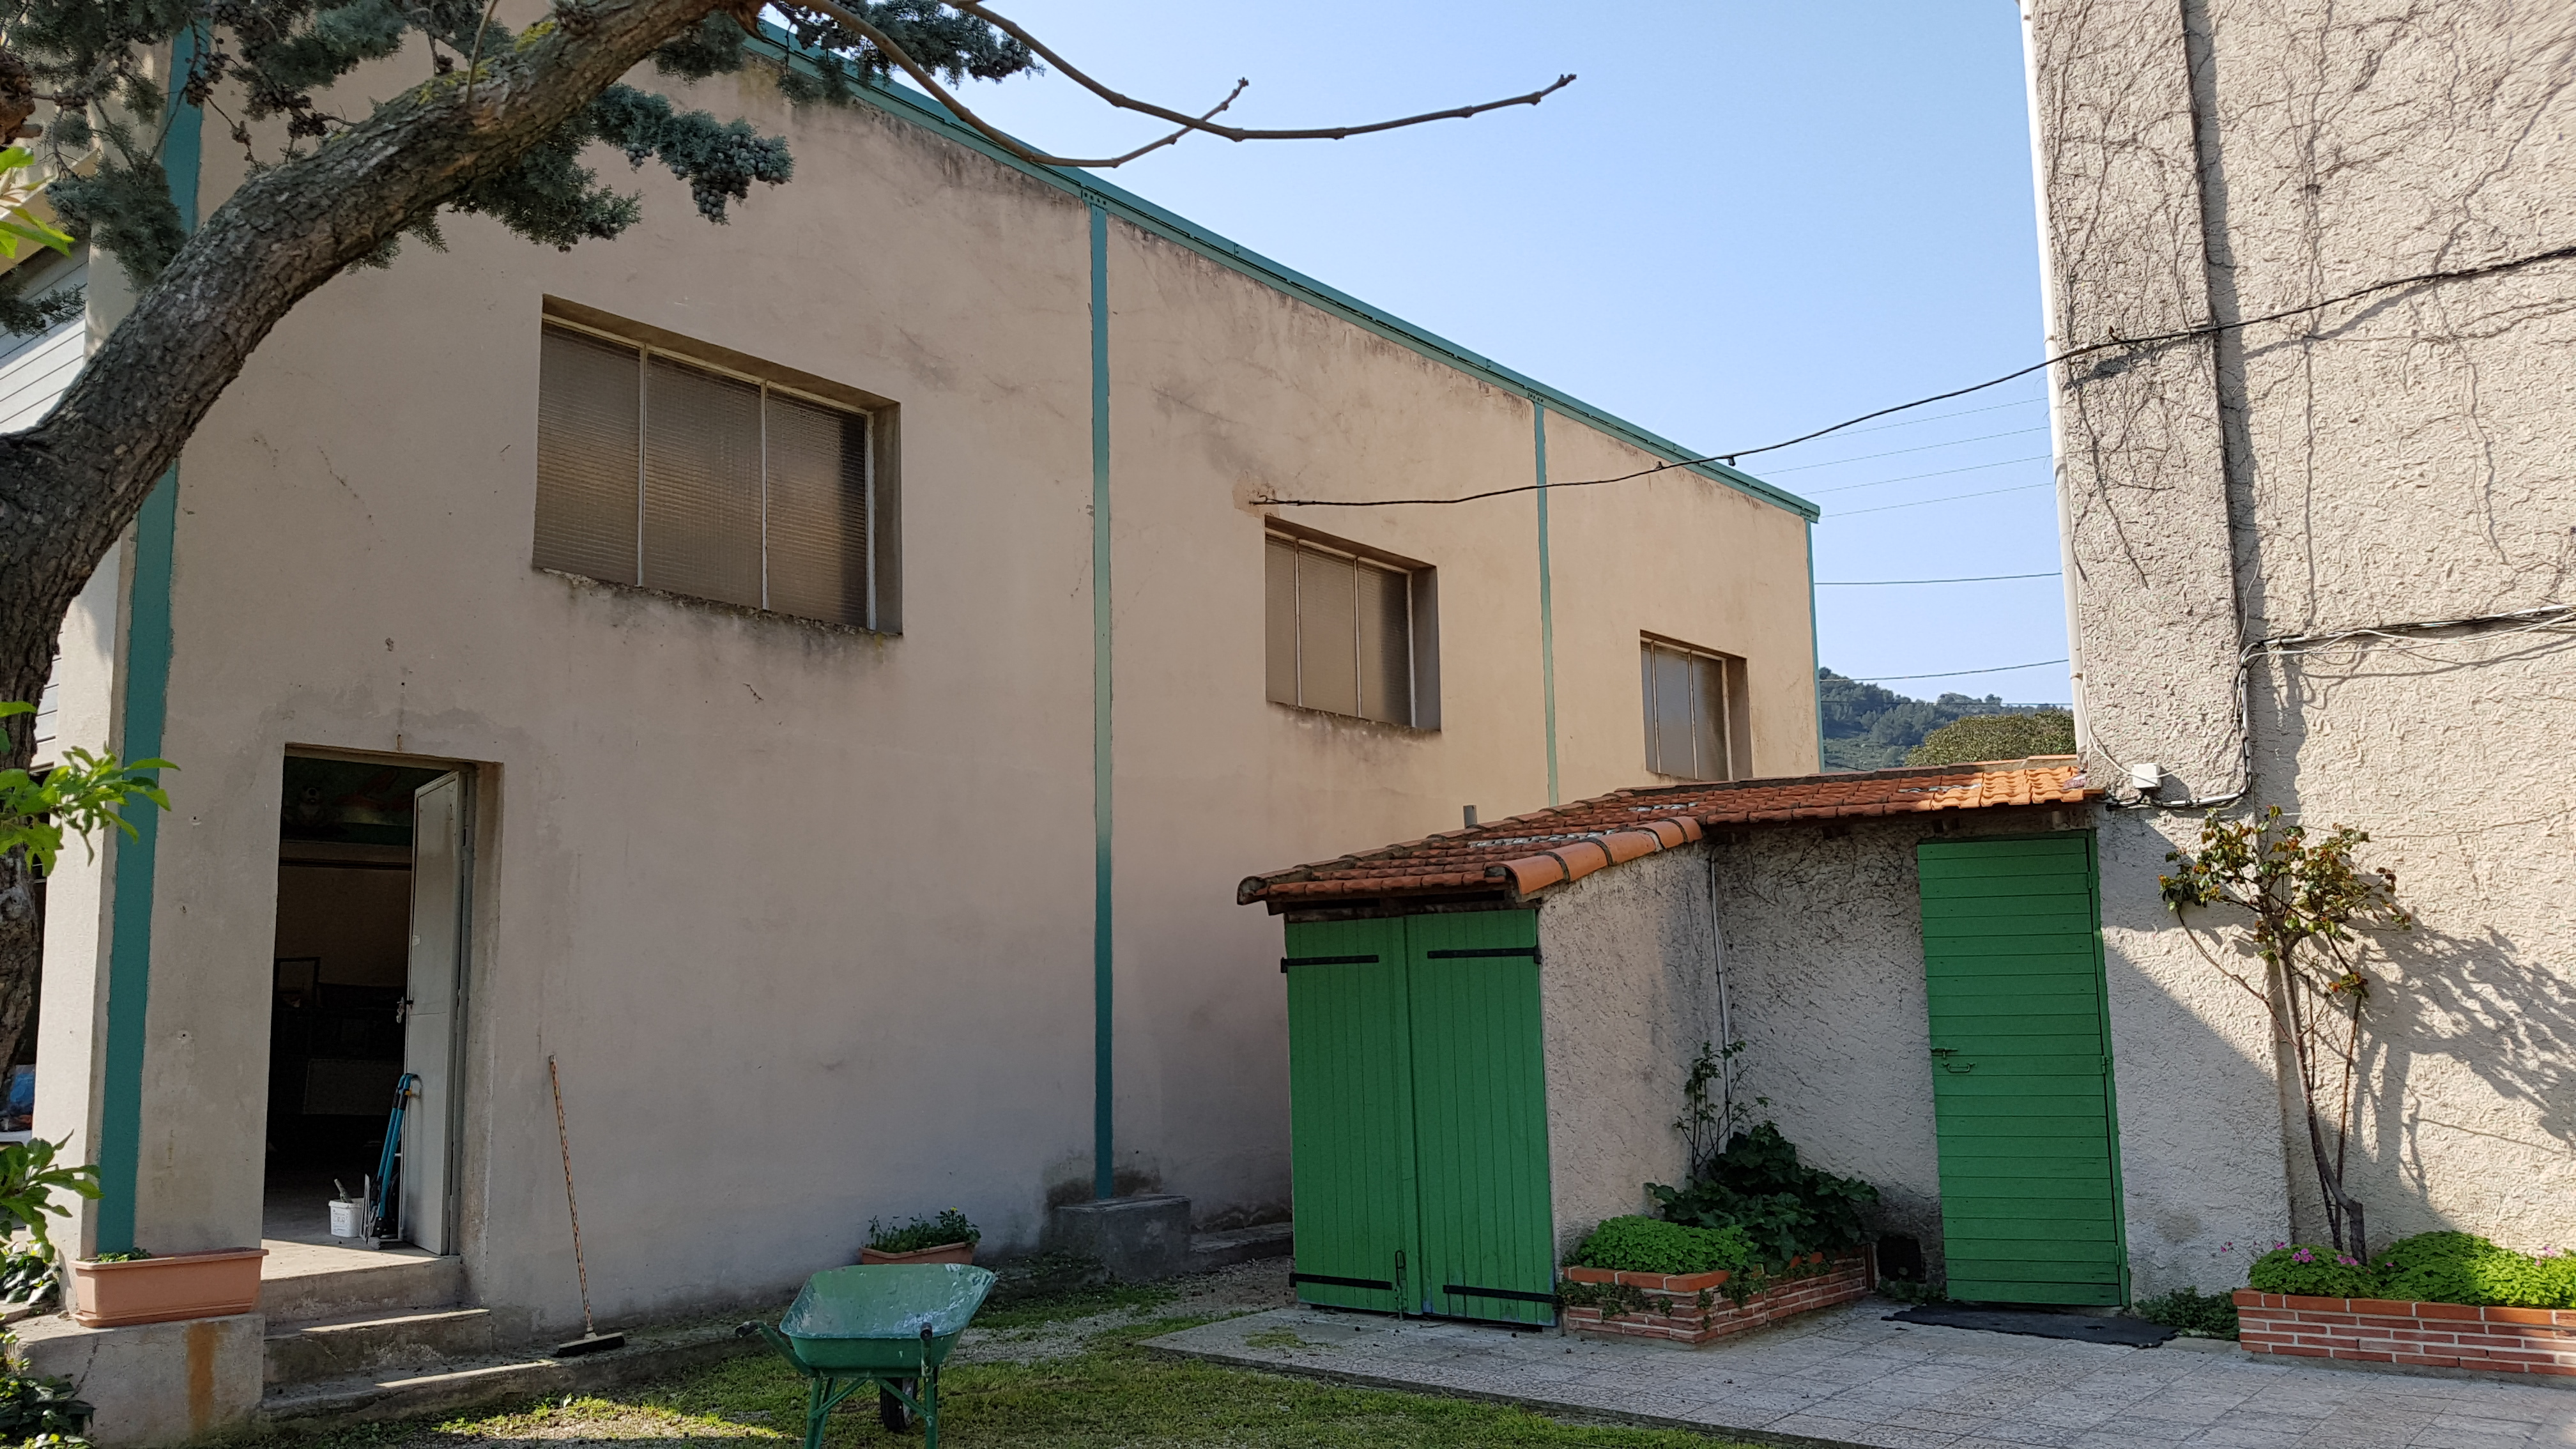 Annonce immobili re immeuble et entrep t 13011 agence for Agence immobiliere 13011